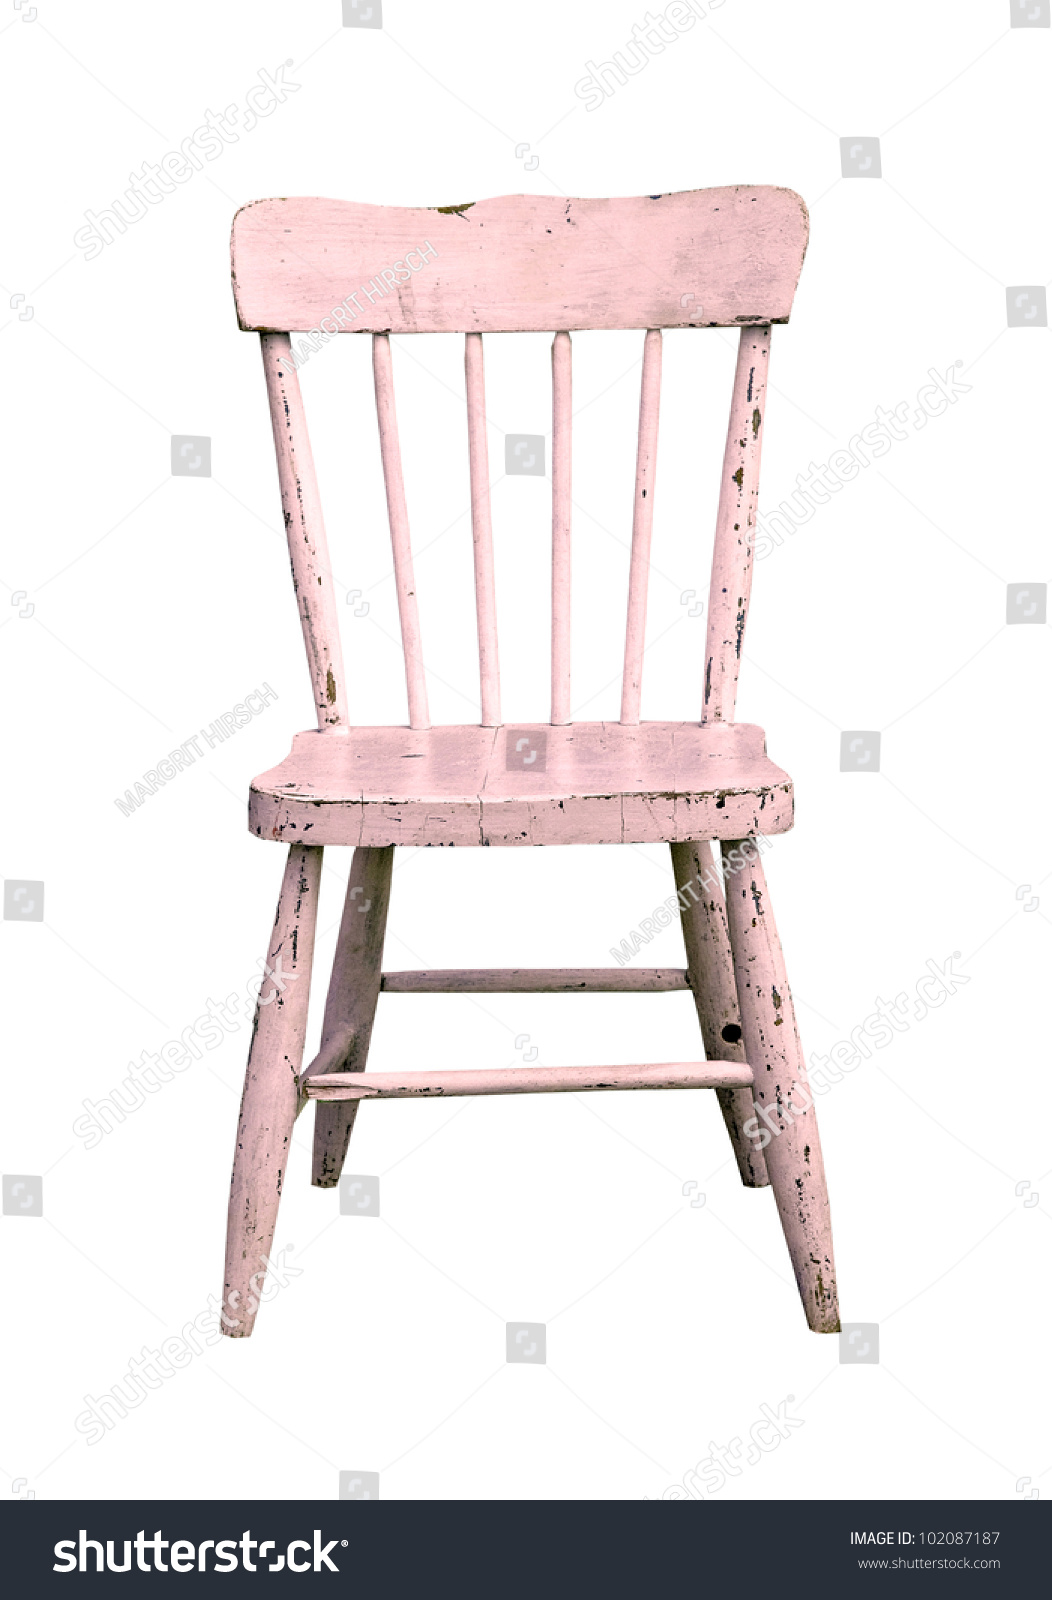 Aged Pink Wooden Childu0027s Chair On A White Background